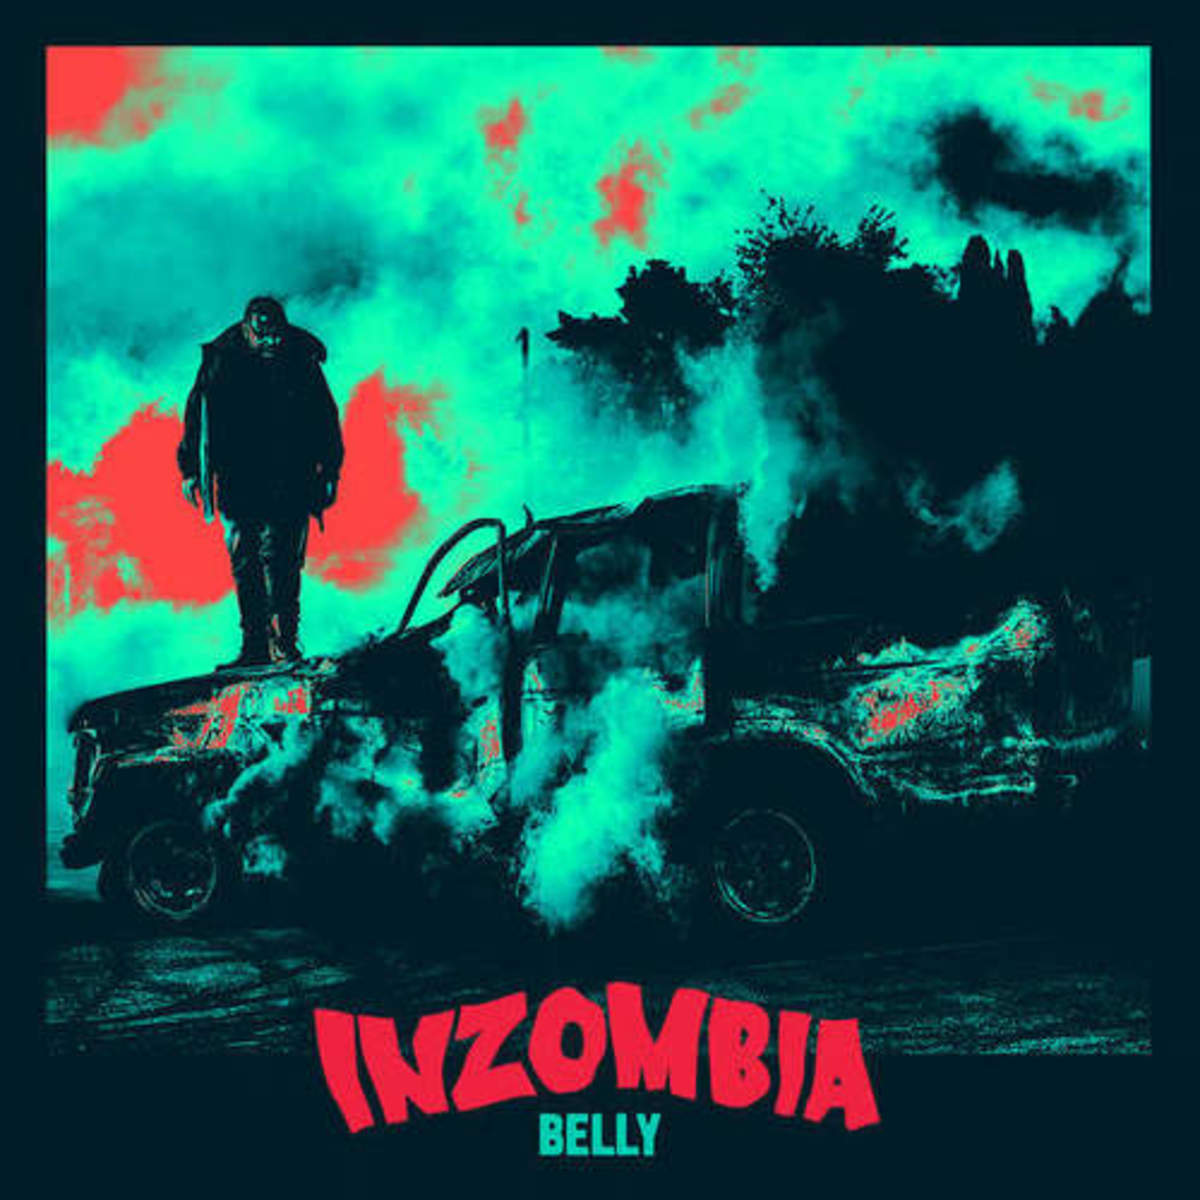 belly-inzombia.jpeg